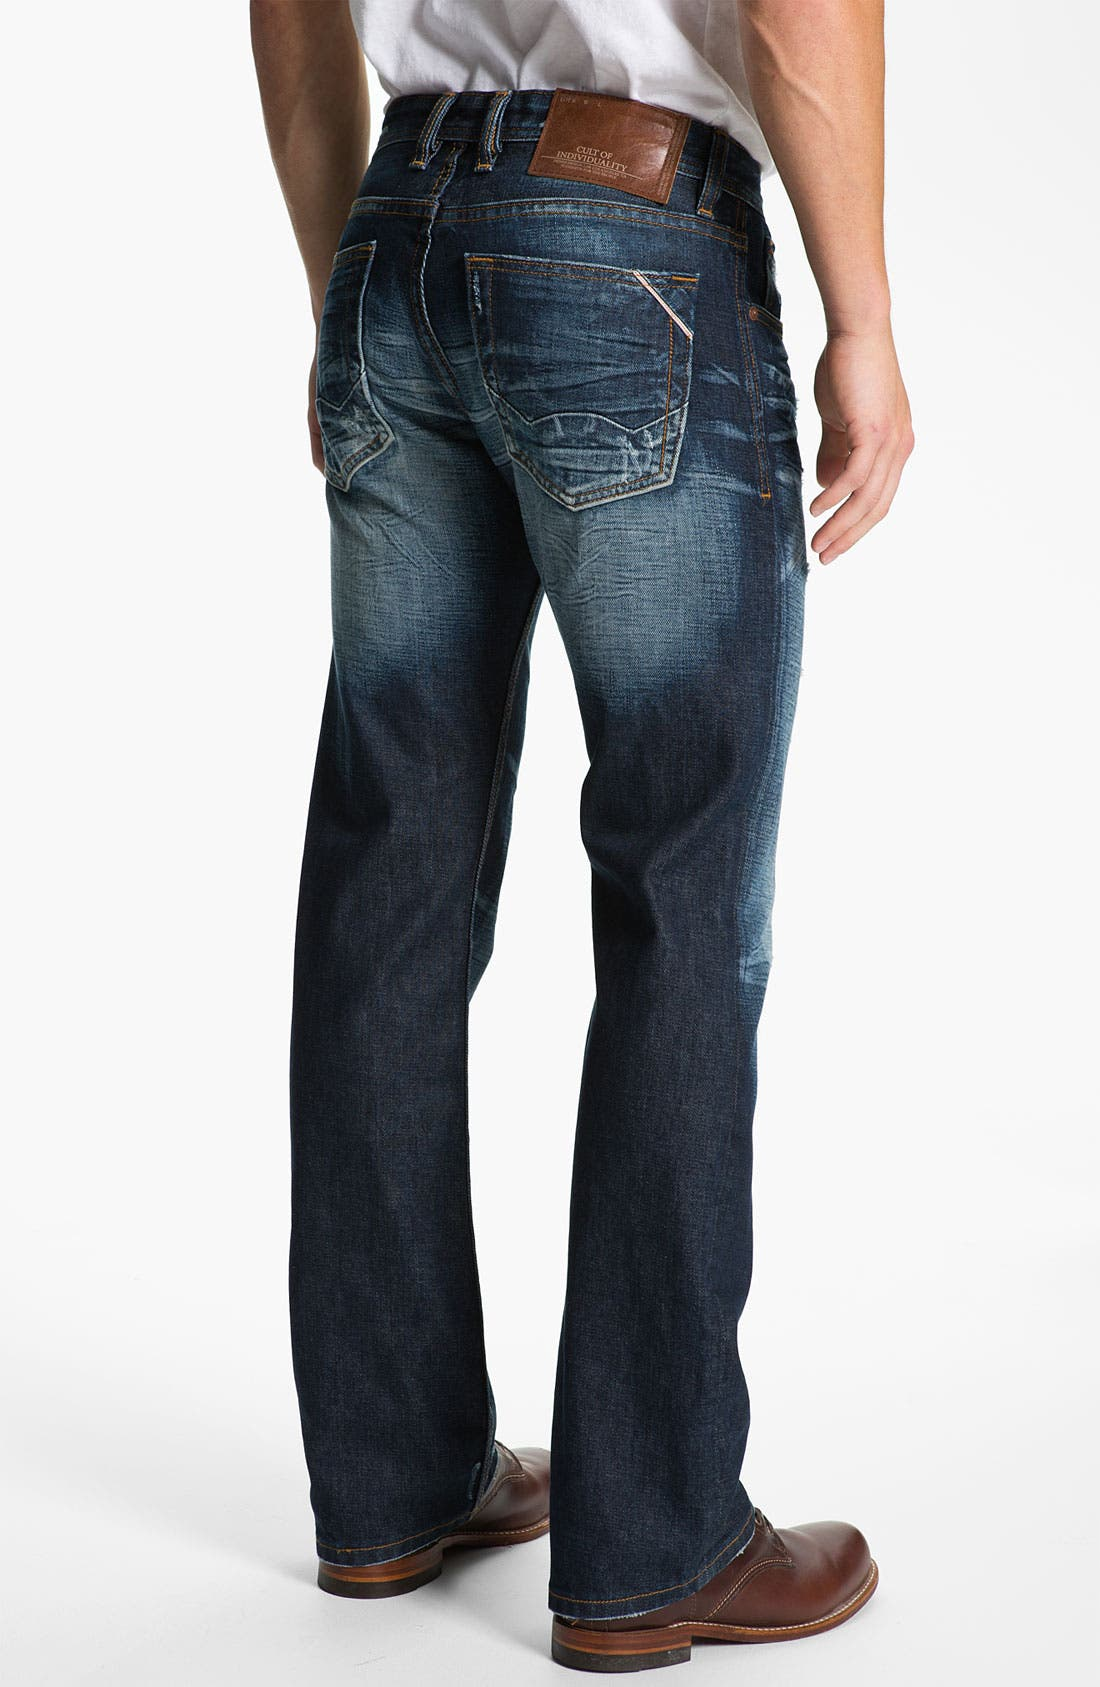 Alternate Image 1 Selected - Cult of Individuality 'Harley' Relaxed Straight Leg Jeans (Dark Blue)